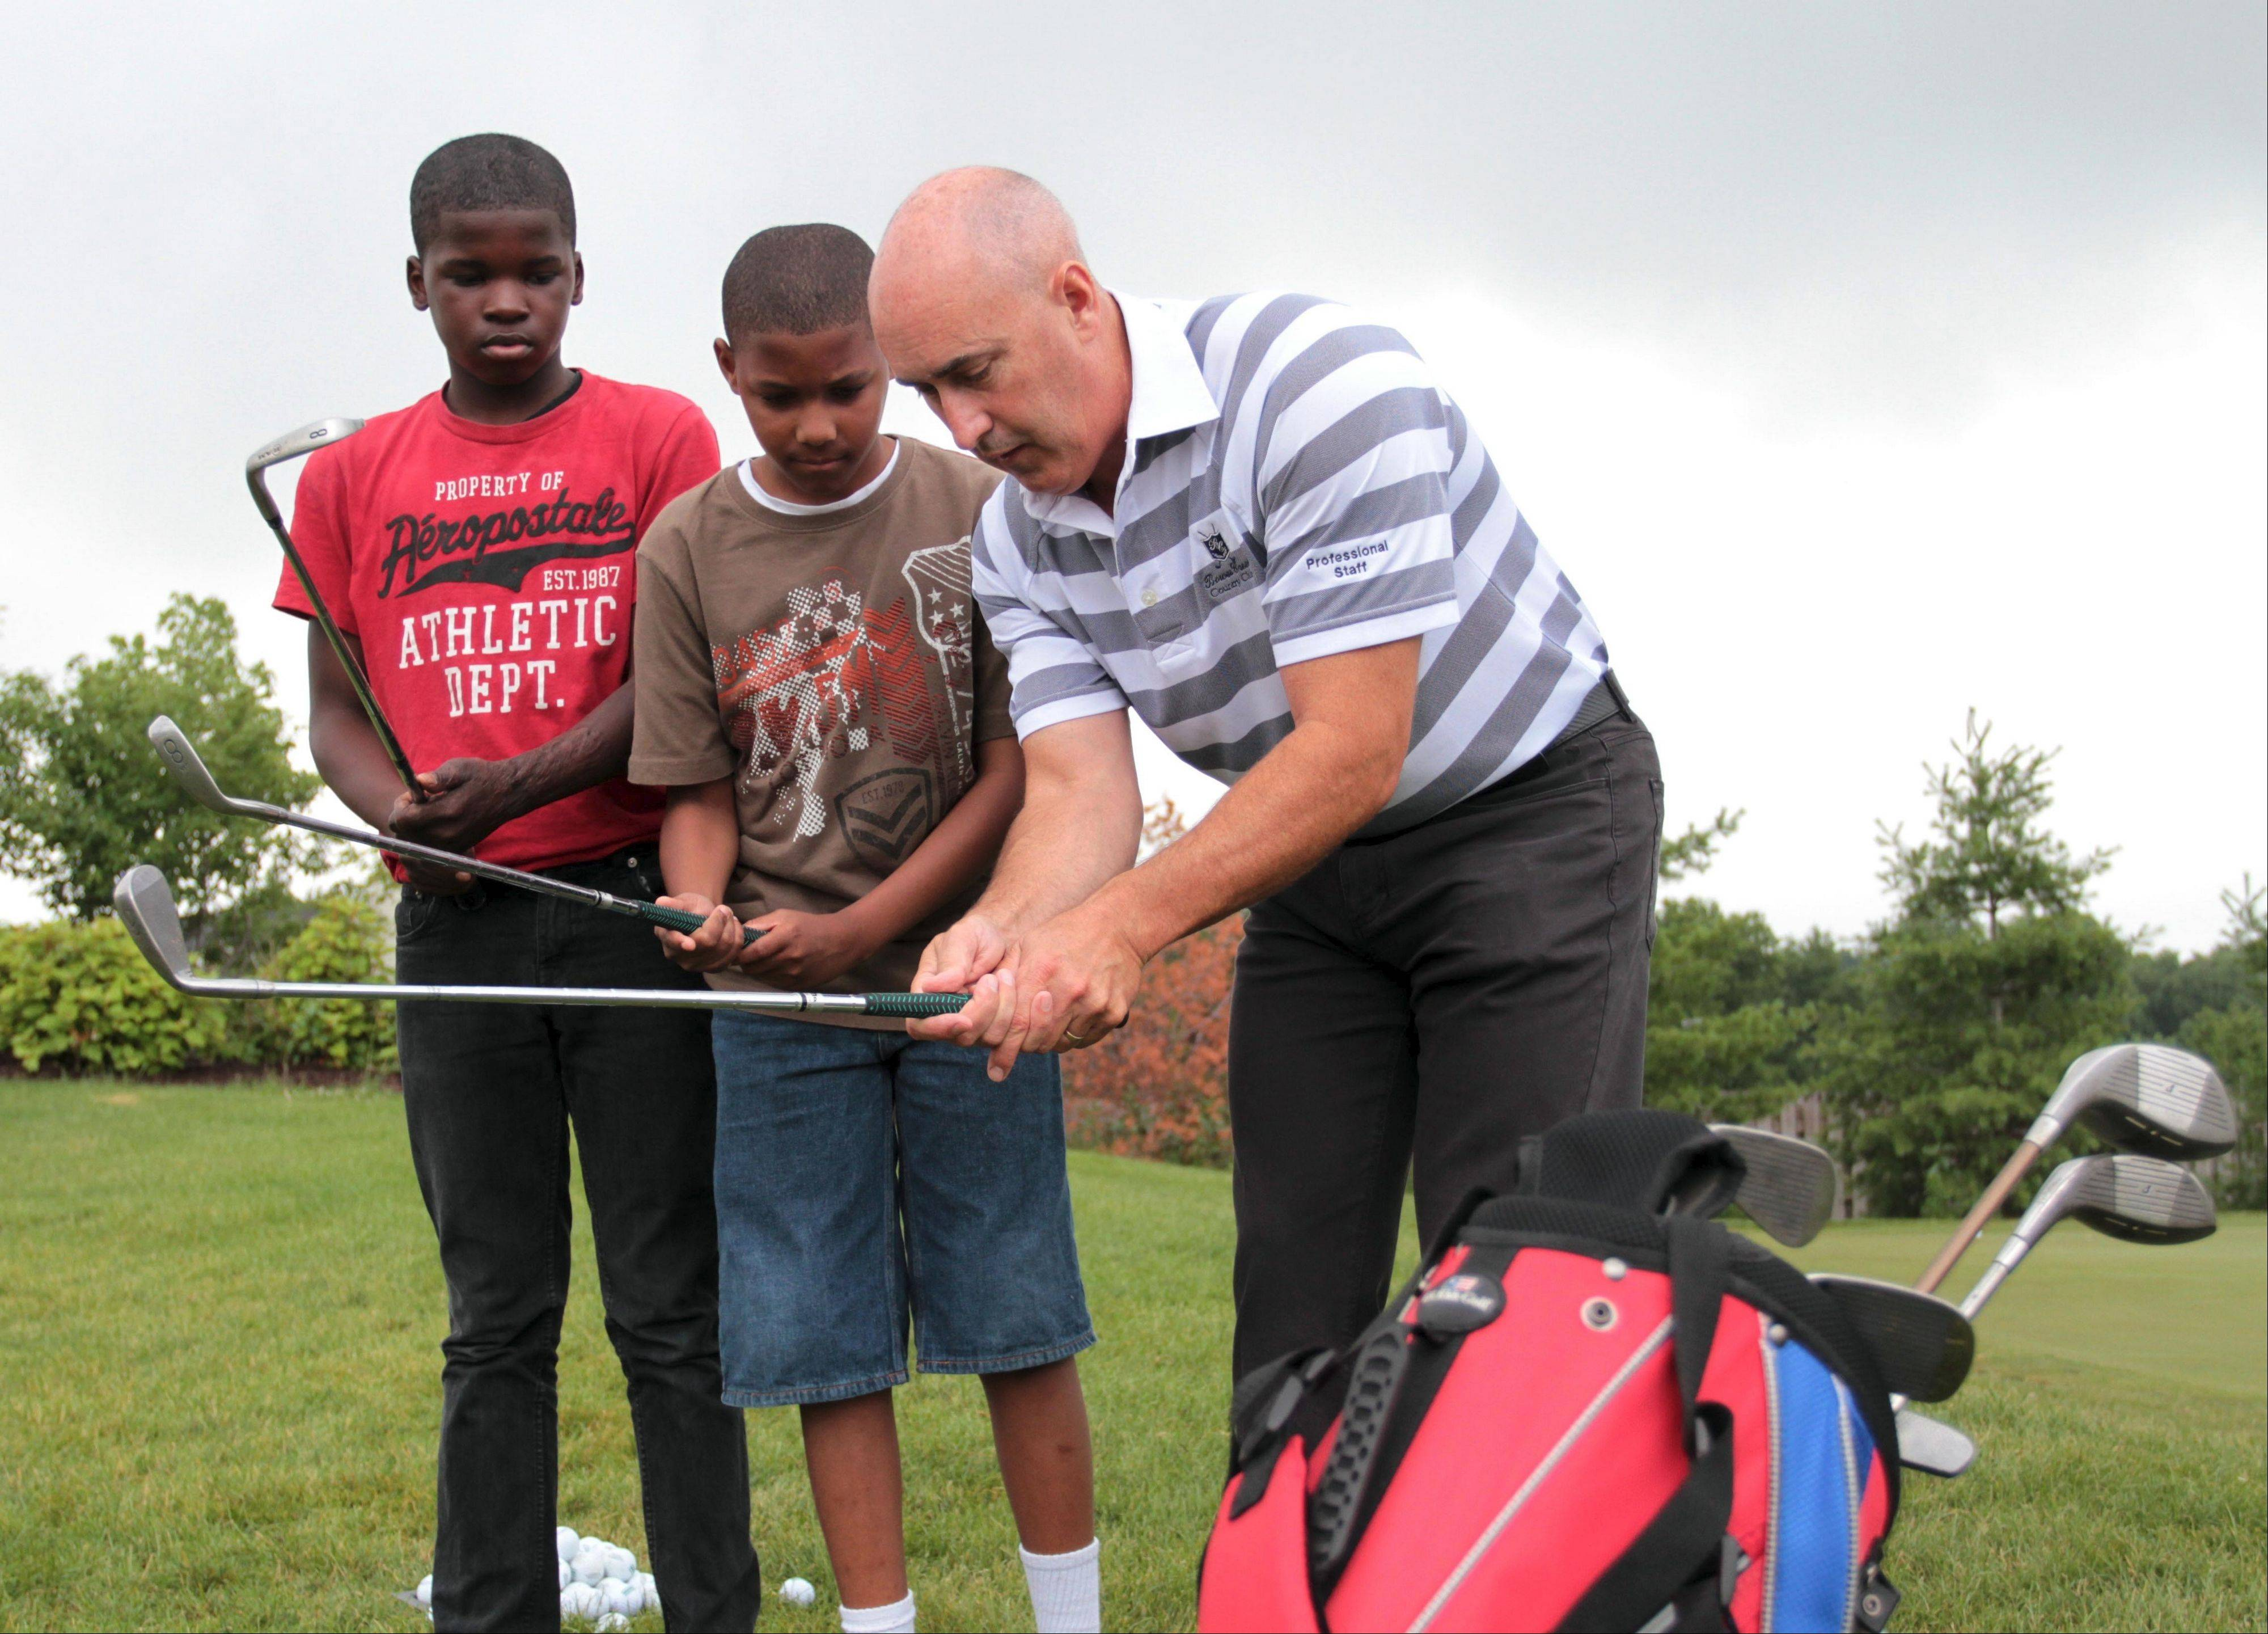 Mike Lehman, director of operations and head golf professional at Bowes Creek Country Club in Elgin, instructs Trey Morris and Damarion Benton, both of Elgin, when they received their clubs from The Sports Shed for the PGA Medalist Golf Camp.